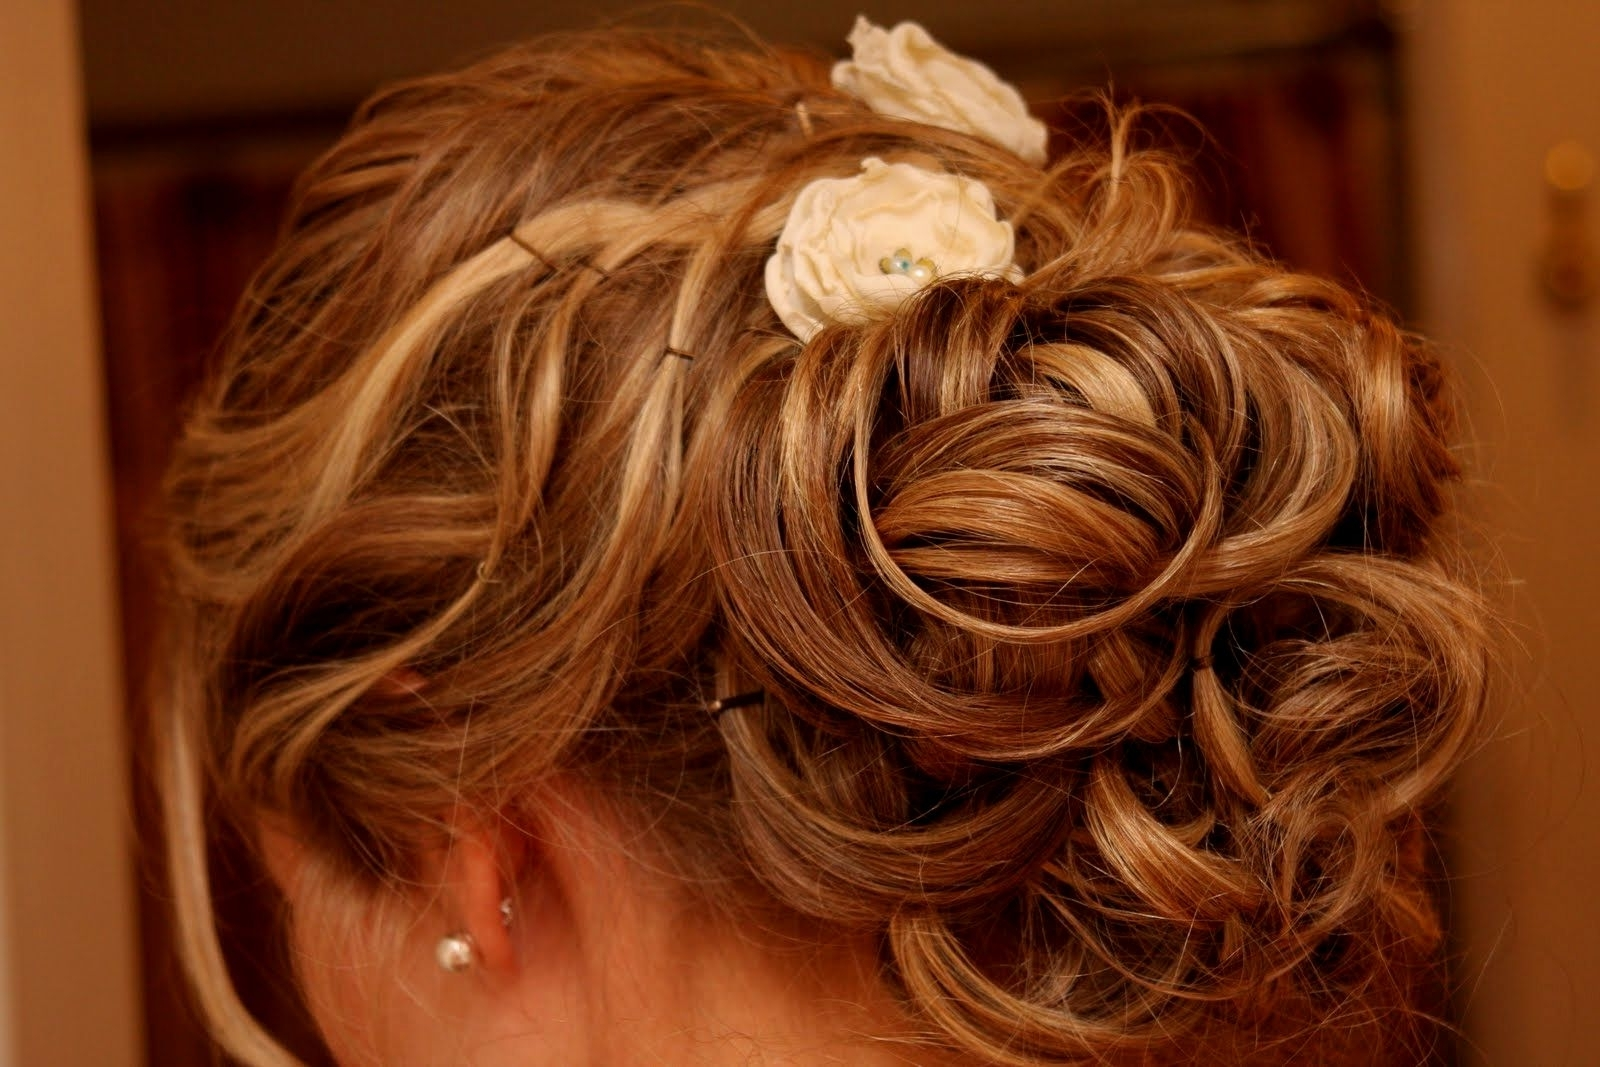 Bridal Hairstyles Thin Hair | Hairstyles Ideas Throughout Messy Updo Hairstyles For Thin Hair (View 11 of 15)